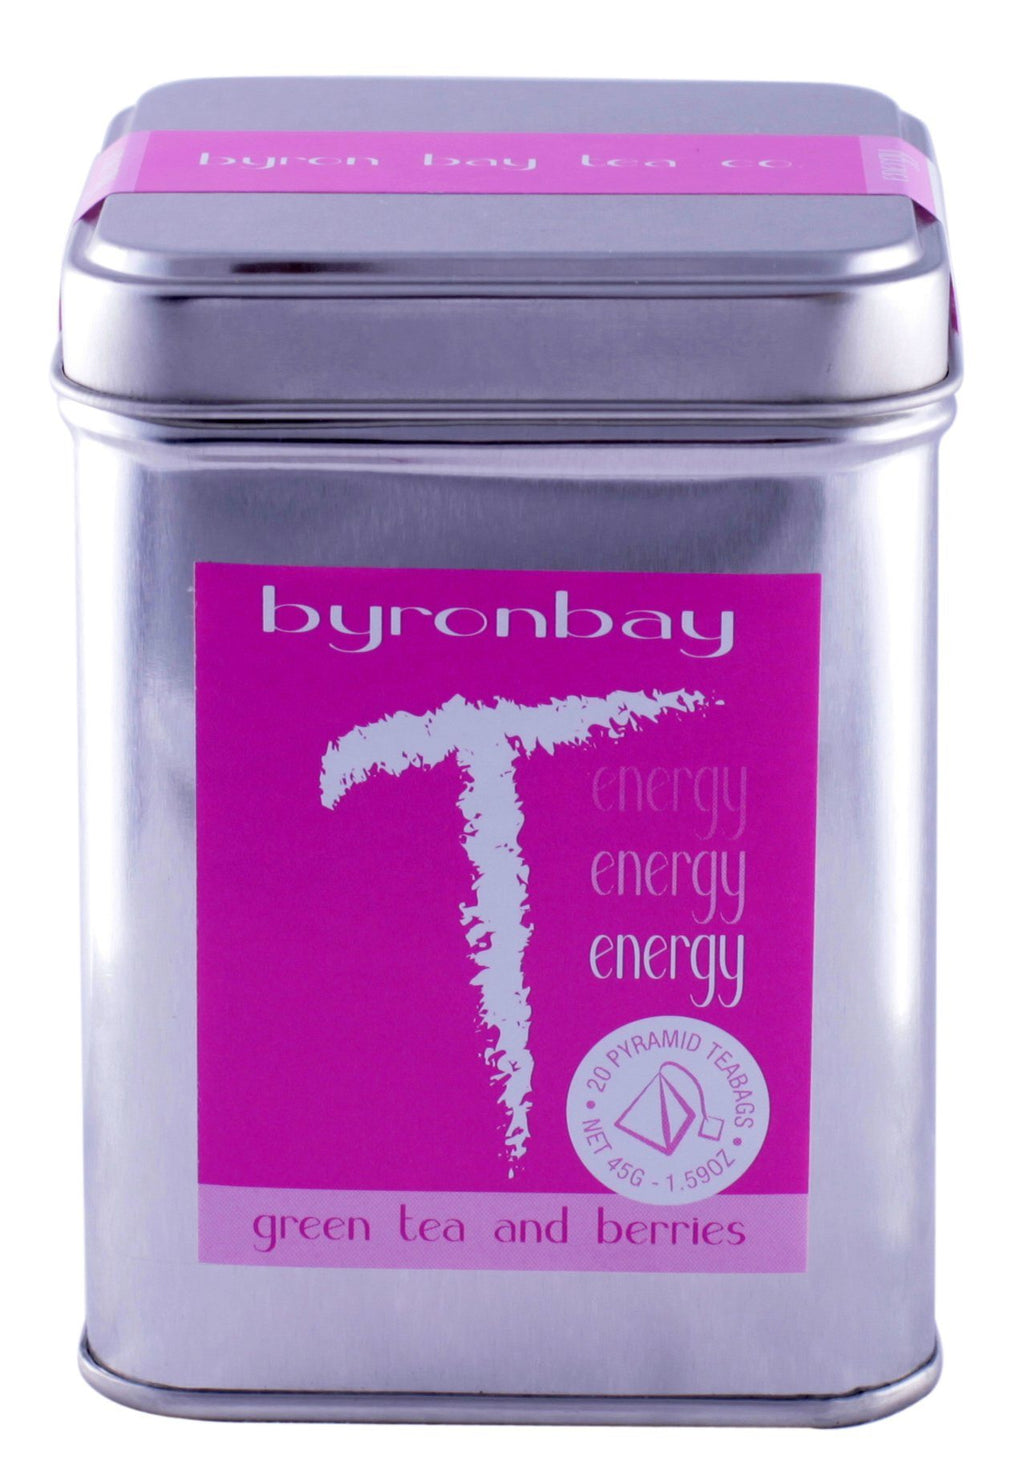 Energy TEABAG Tin Small Retail Other Old Stock Default Title